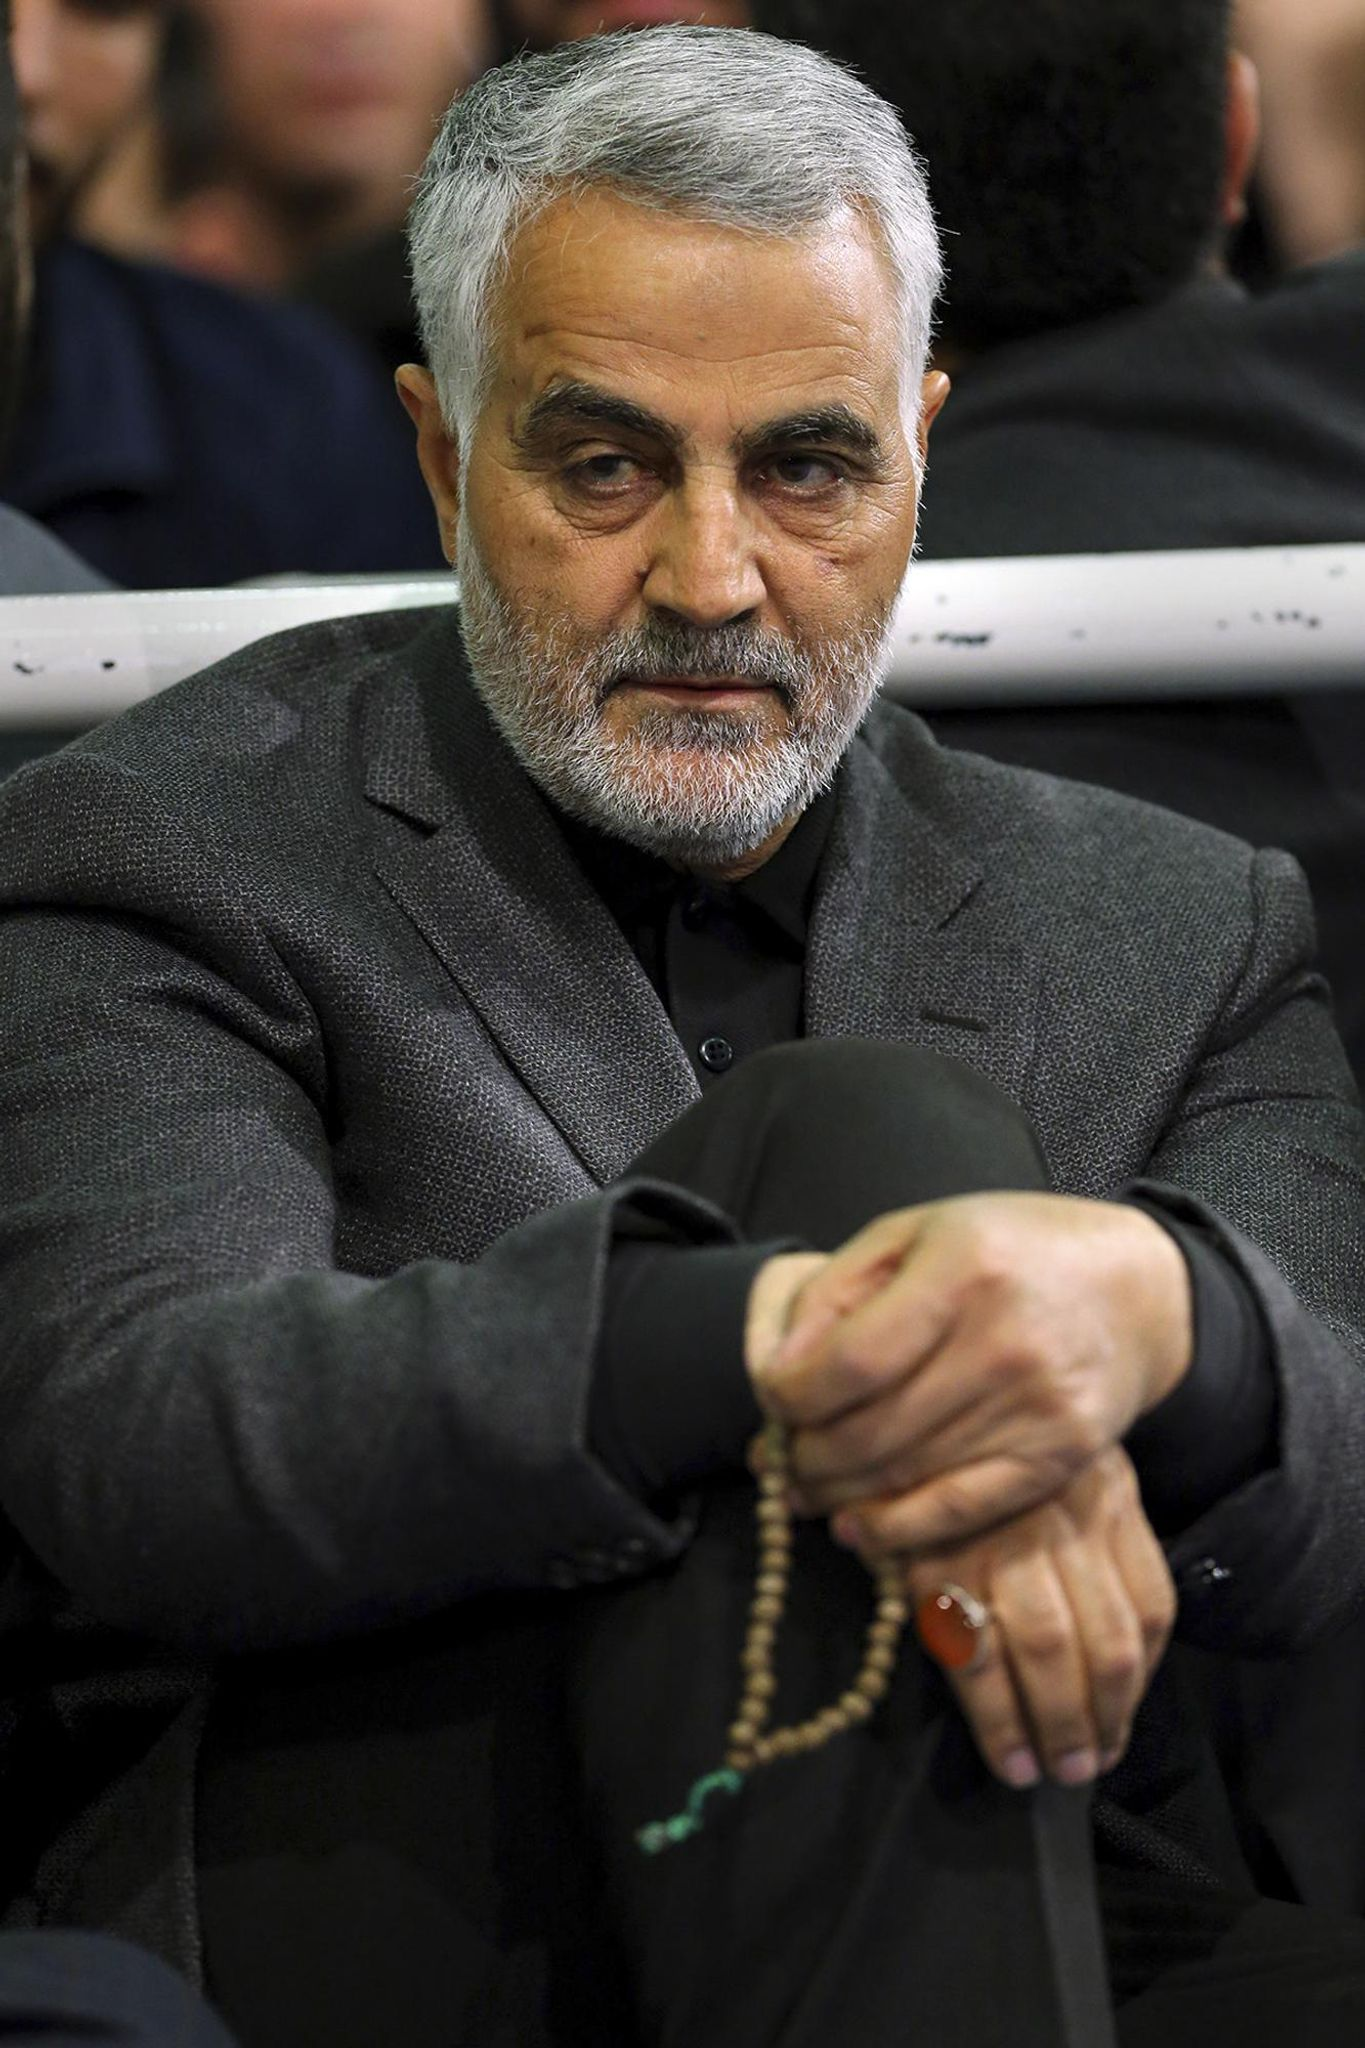 An emboldened Iran: The other side of the nuke deal